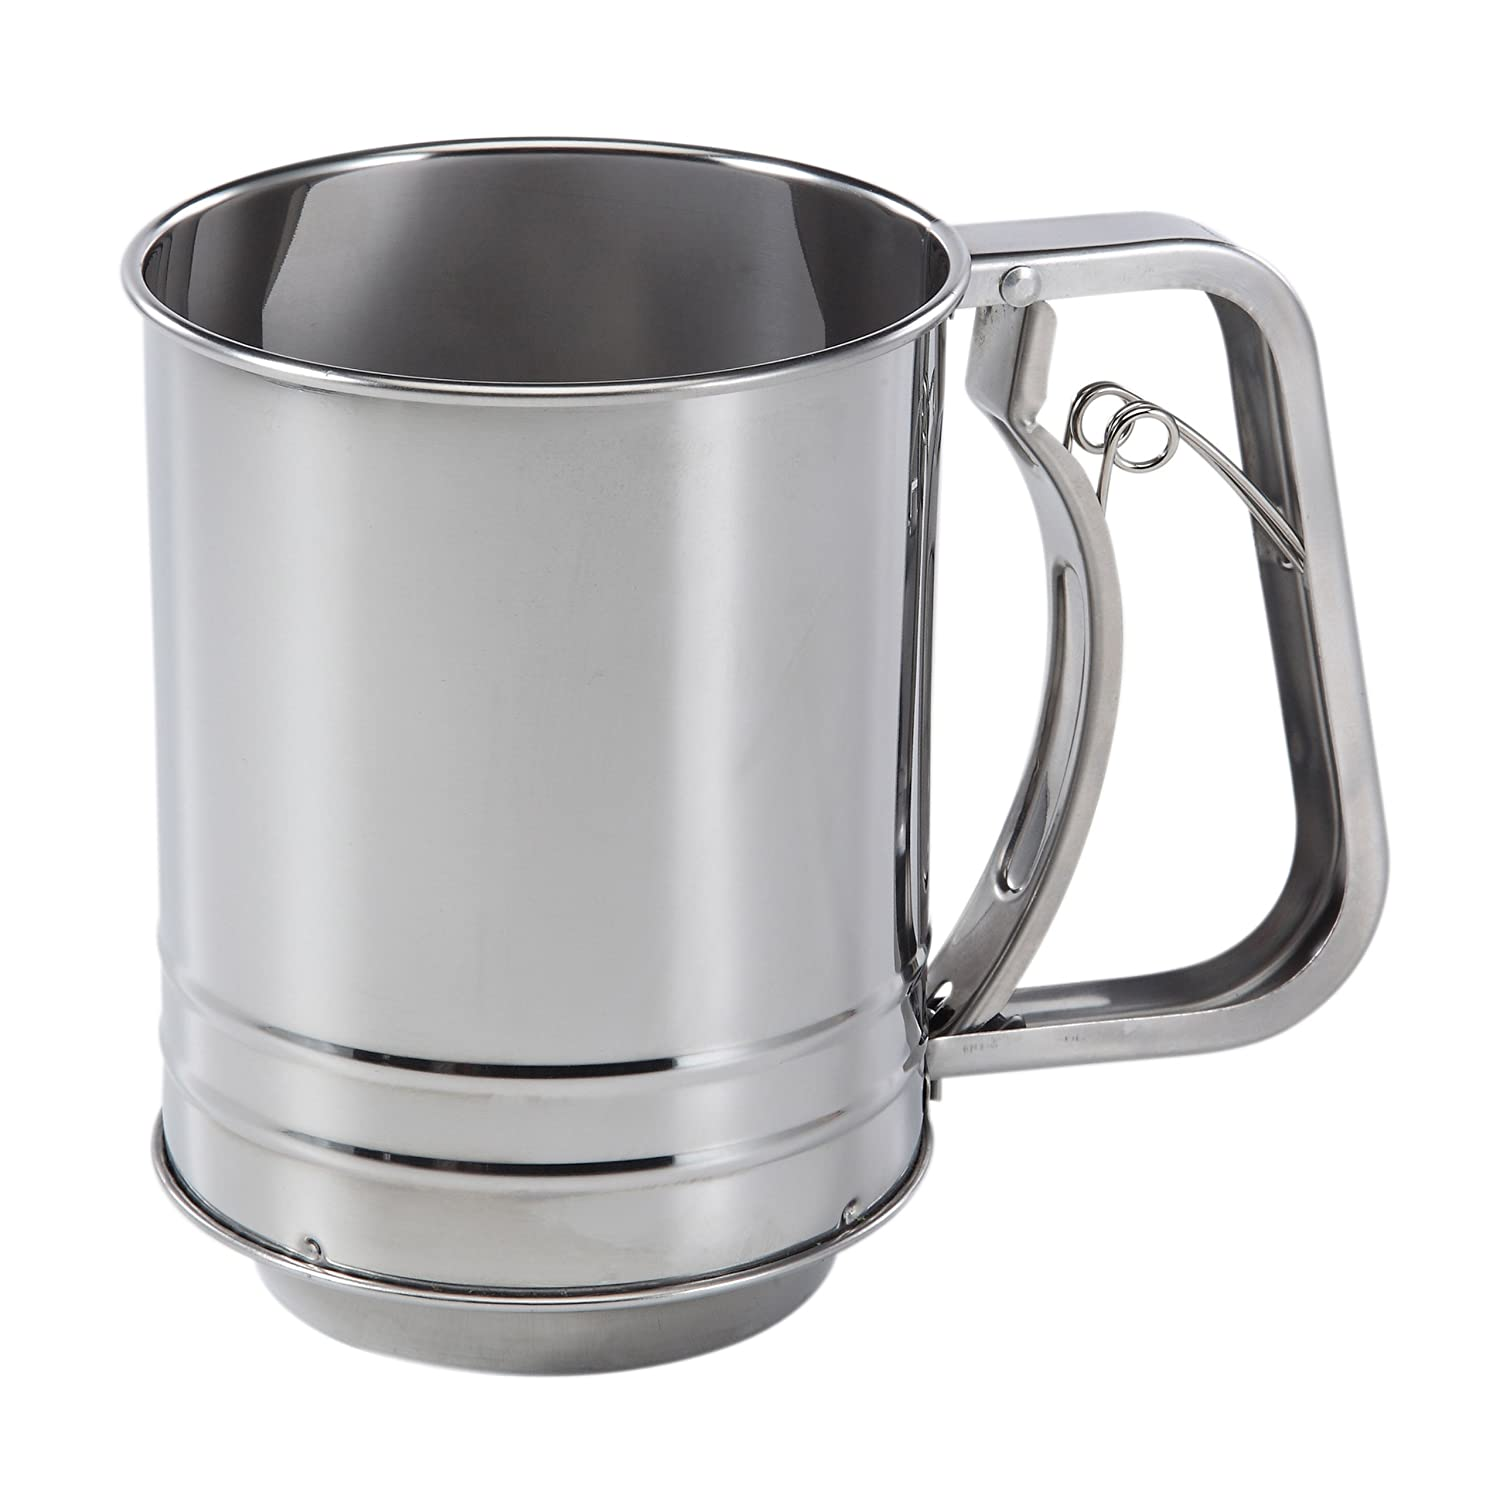 Baker's Secret 3-Cup Stainless Steel Flour Sifter World Kitchen (PA) 1109846